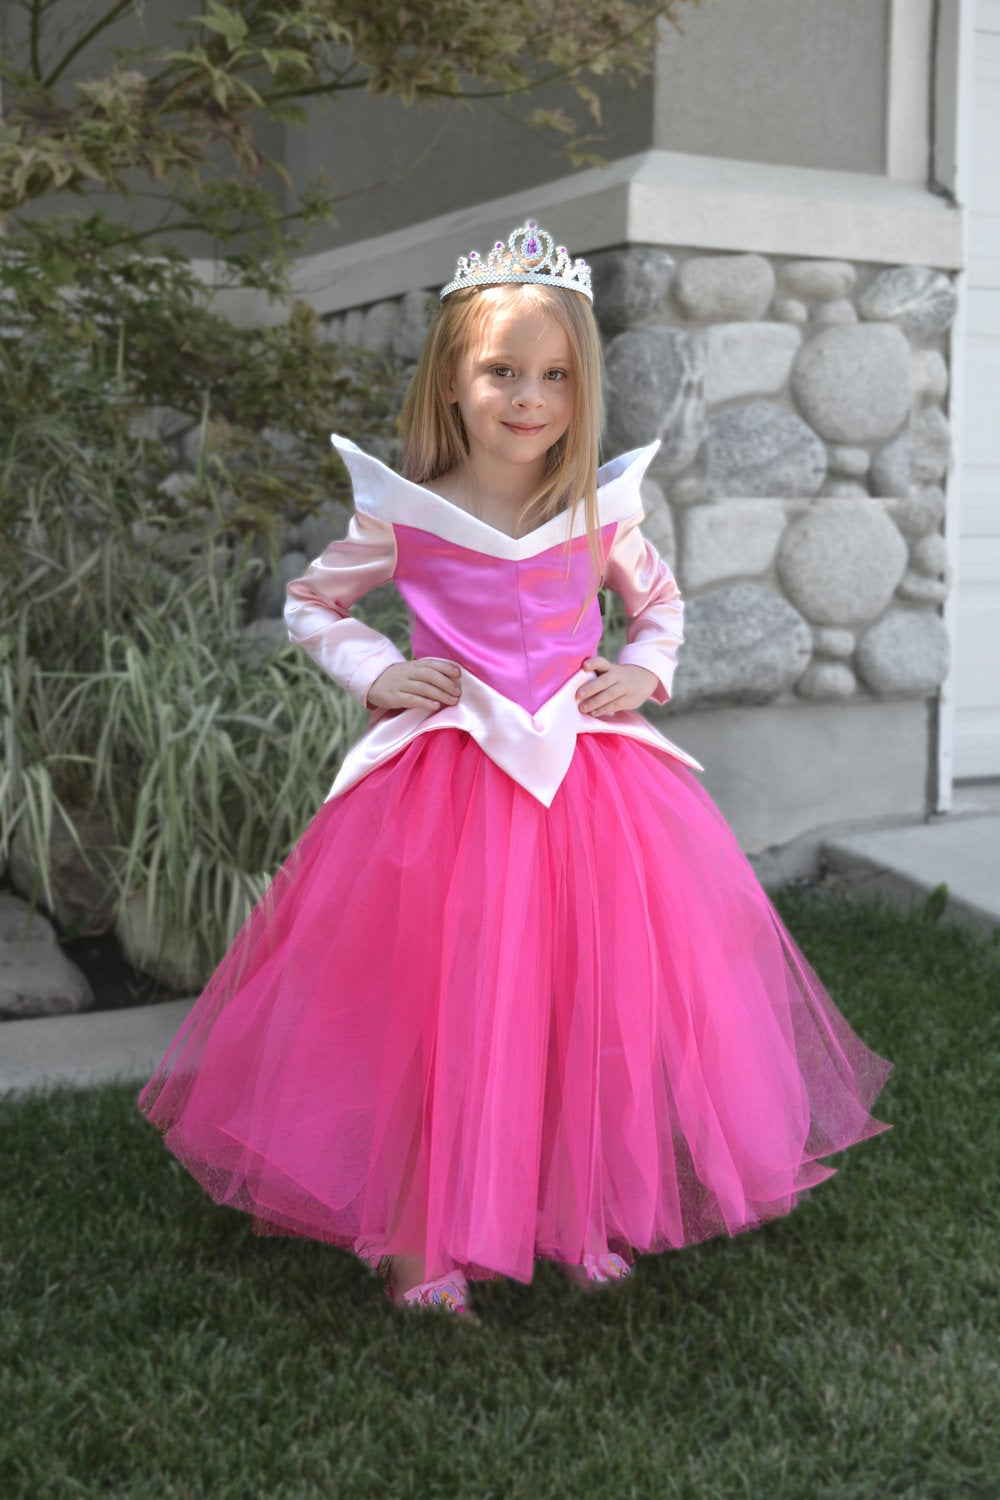 Sleeping Beauty dress, Princess Aurora dress, Princess dress, Aurora costume, satin dress, pink dress, …